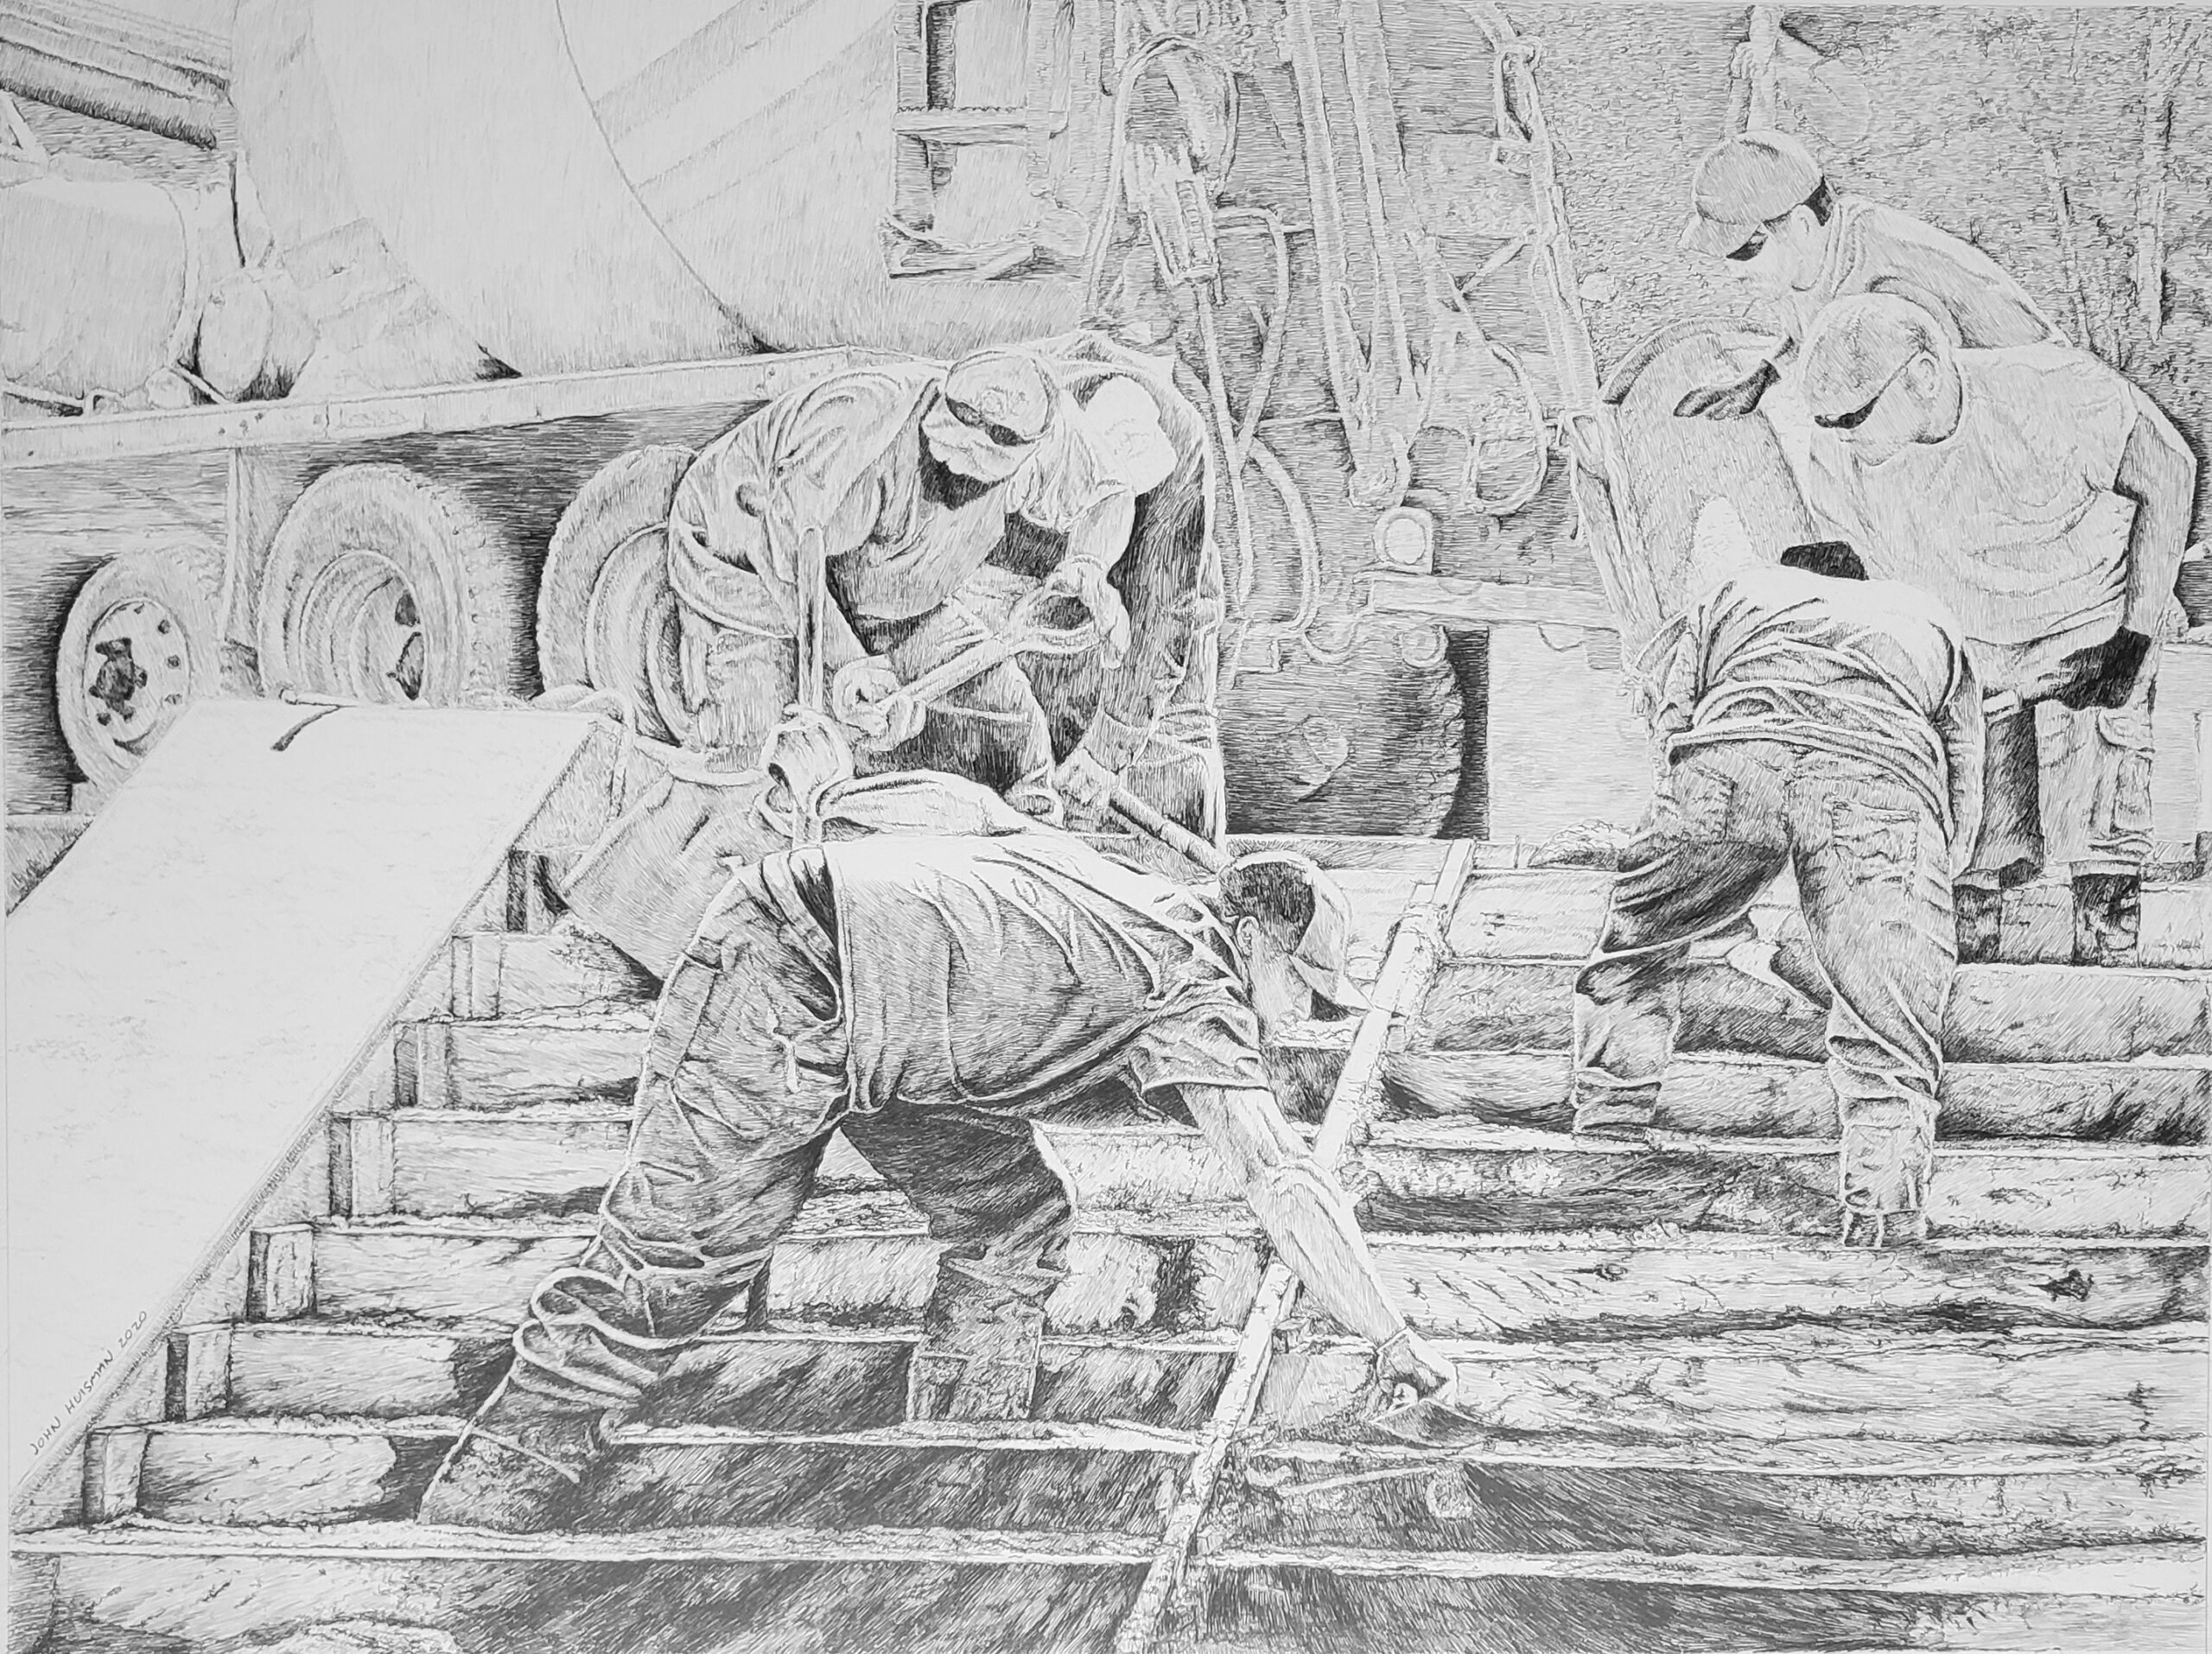 Pouring the steps, 18x24 pencil drawing by John Huisman